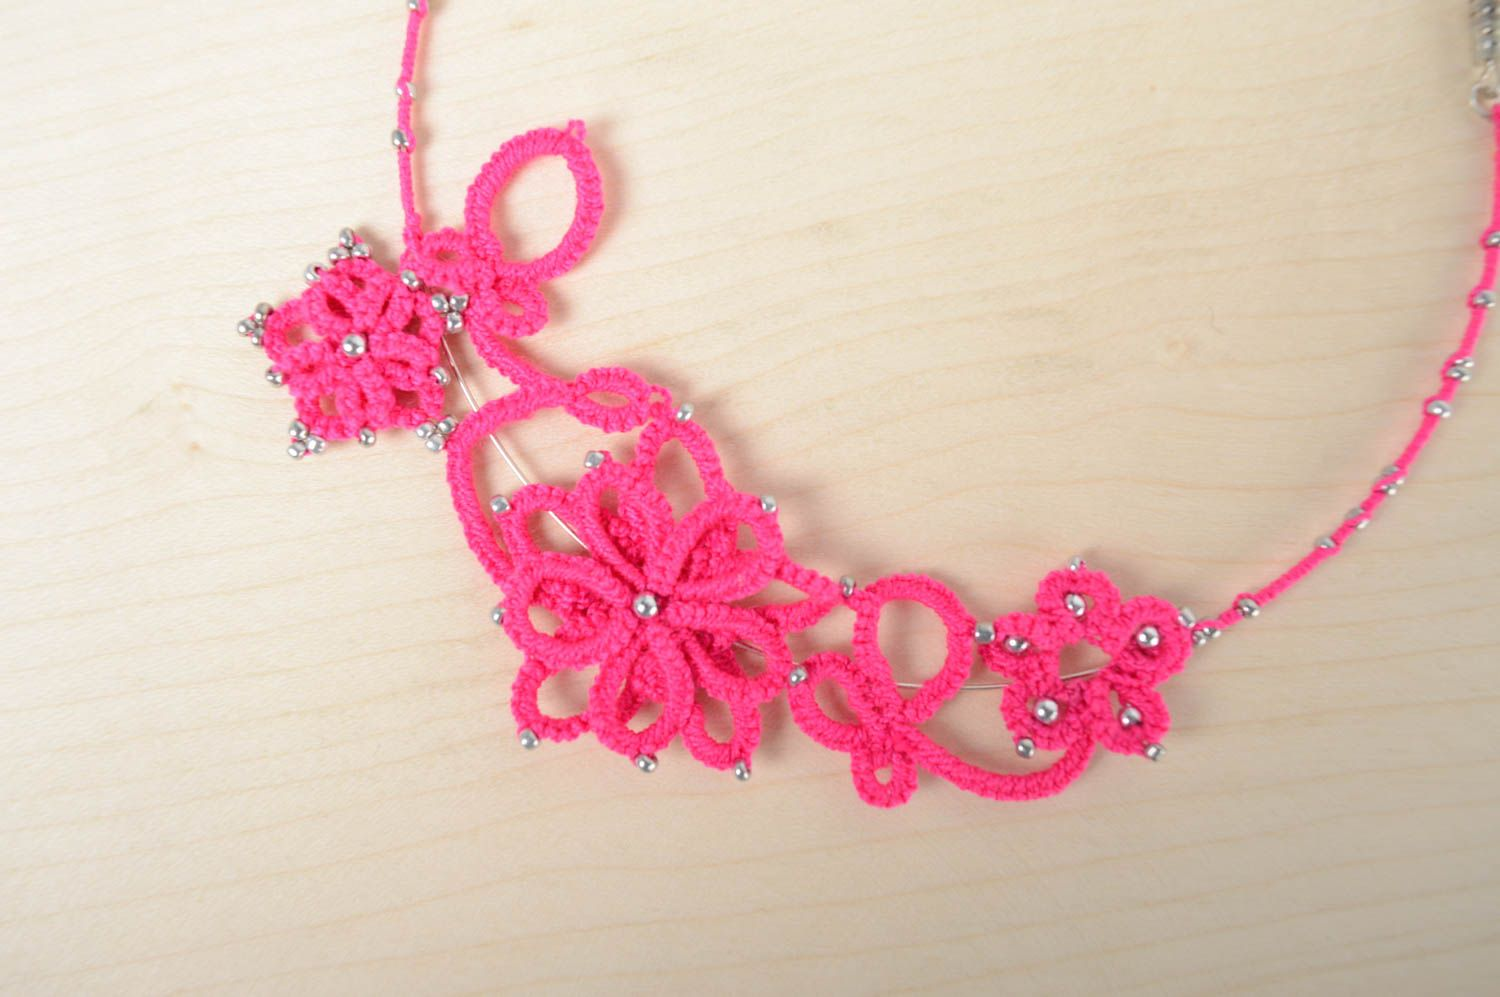 Woven necklace photo 5